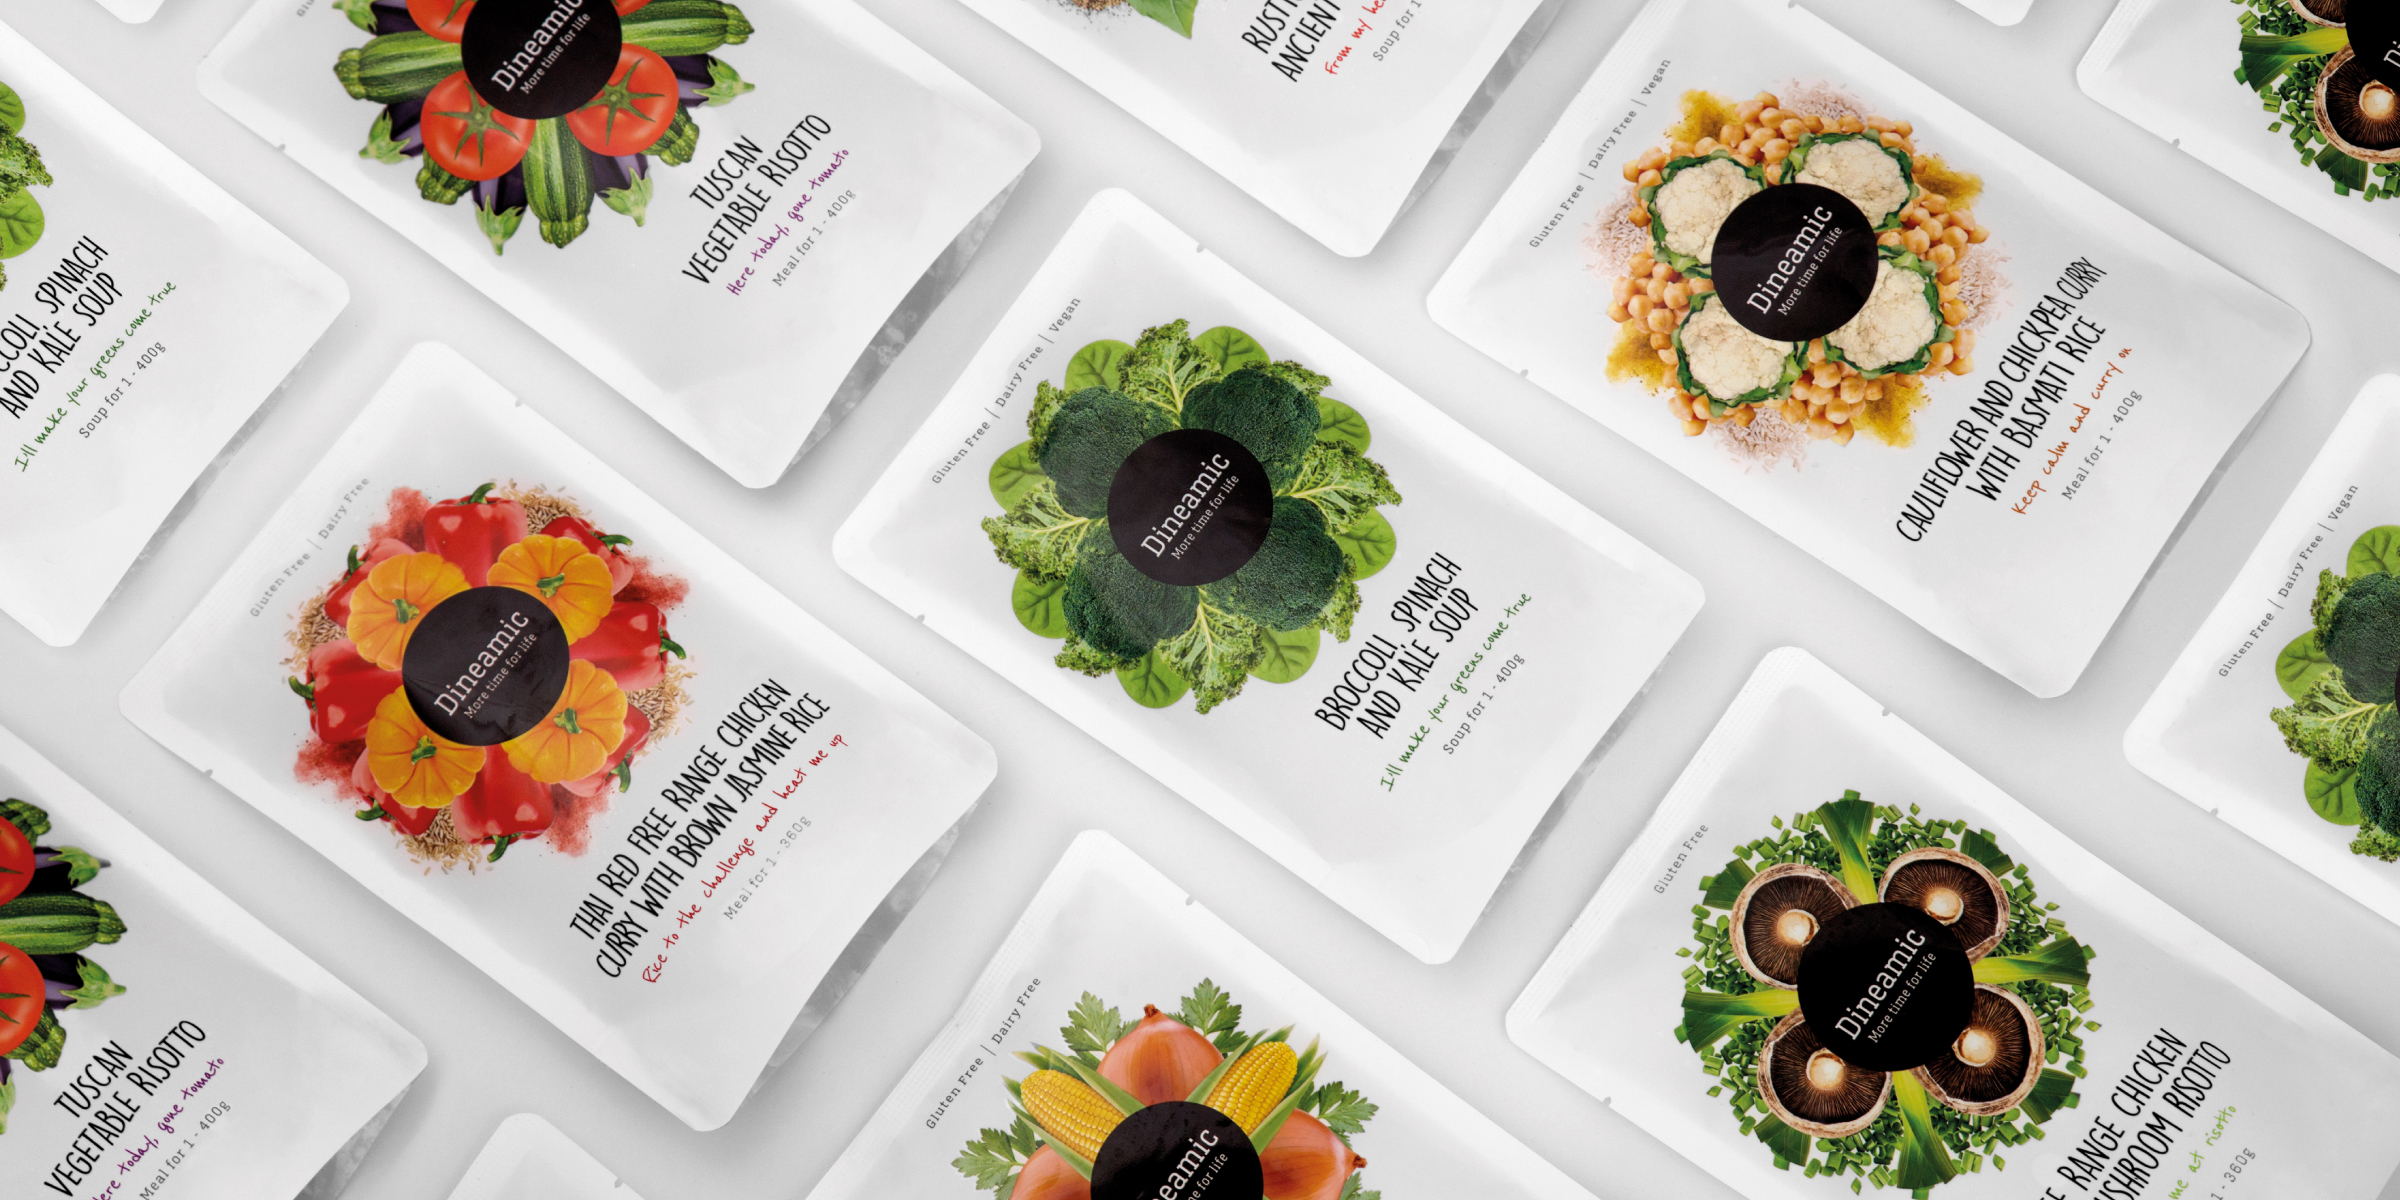 Davidson Branding FMCG Dineamic Packaging Range Flat Lay